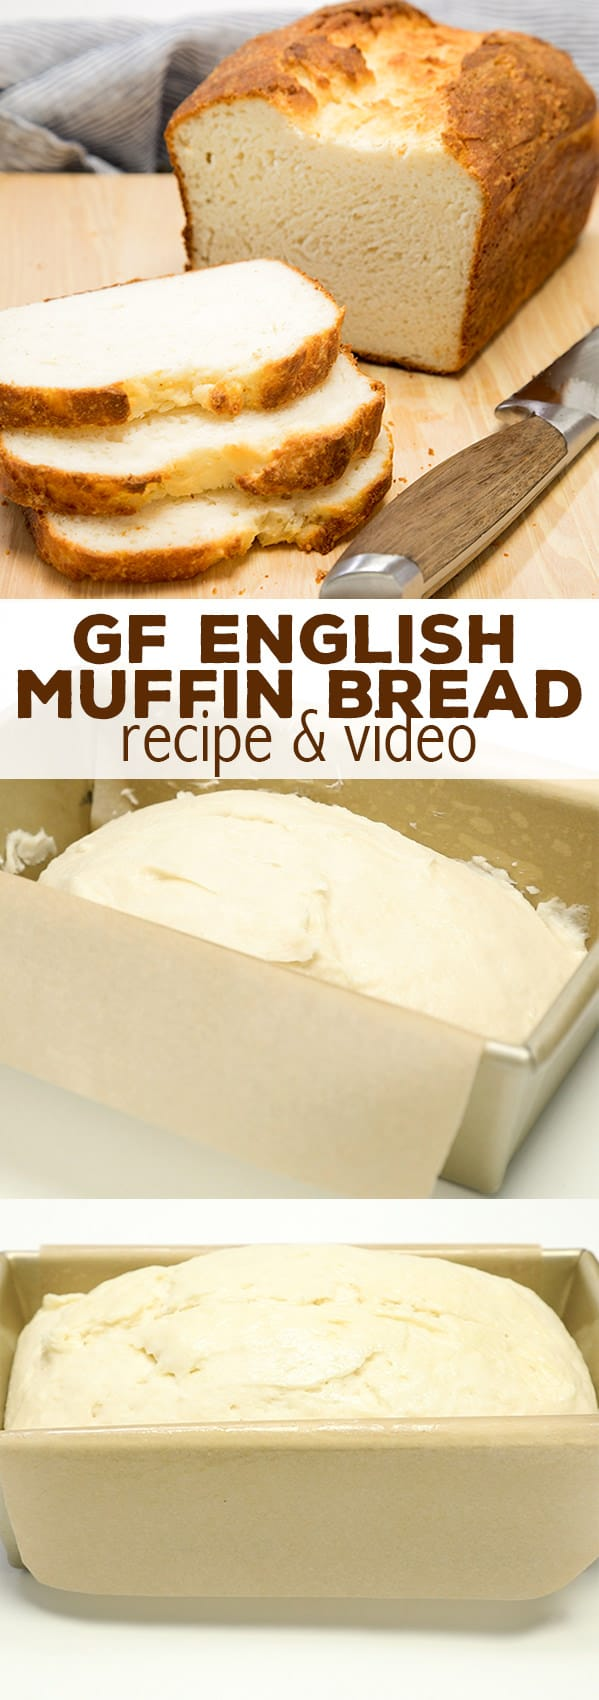 Light, tender and soft, with a soft crust, this gluten free English muffin bread is the easy white sandwich bread you've been searching for!